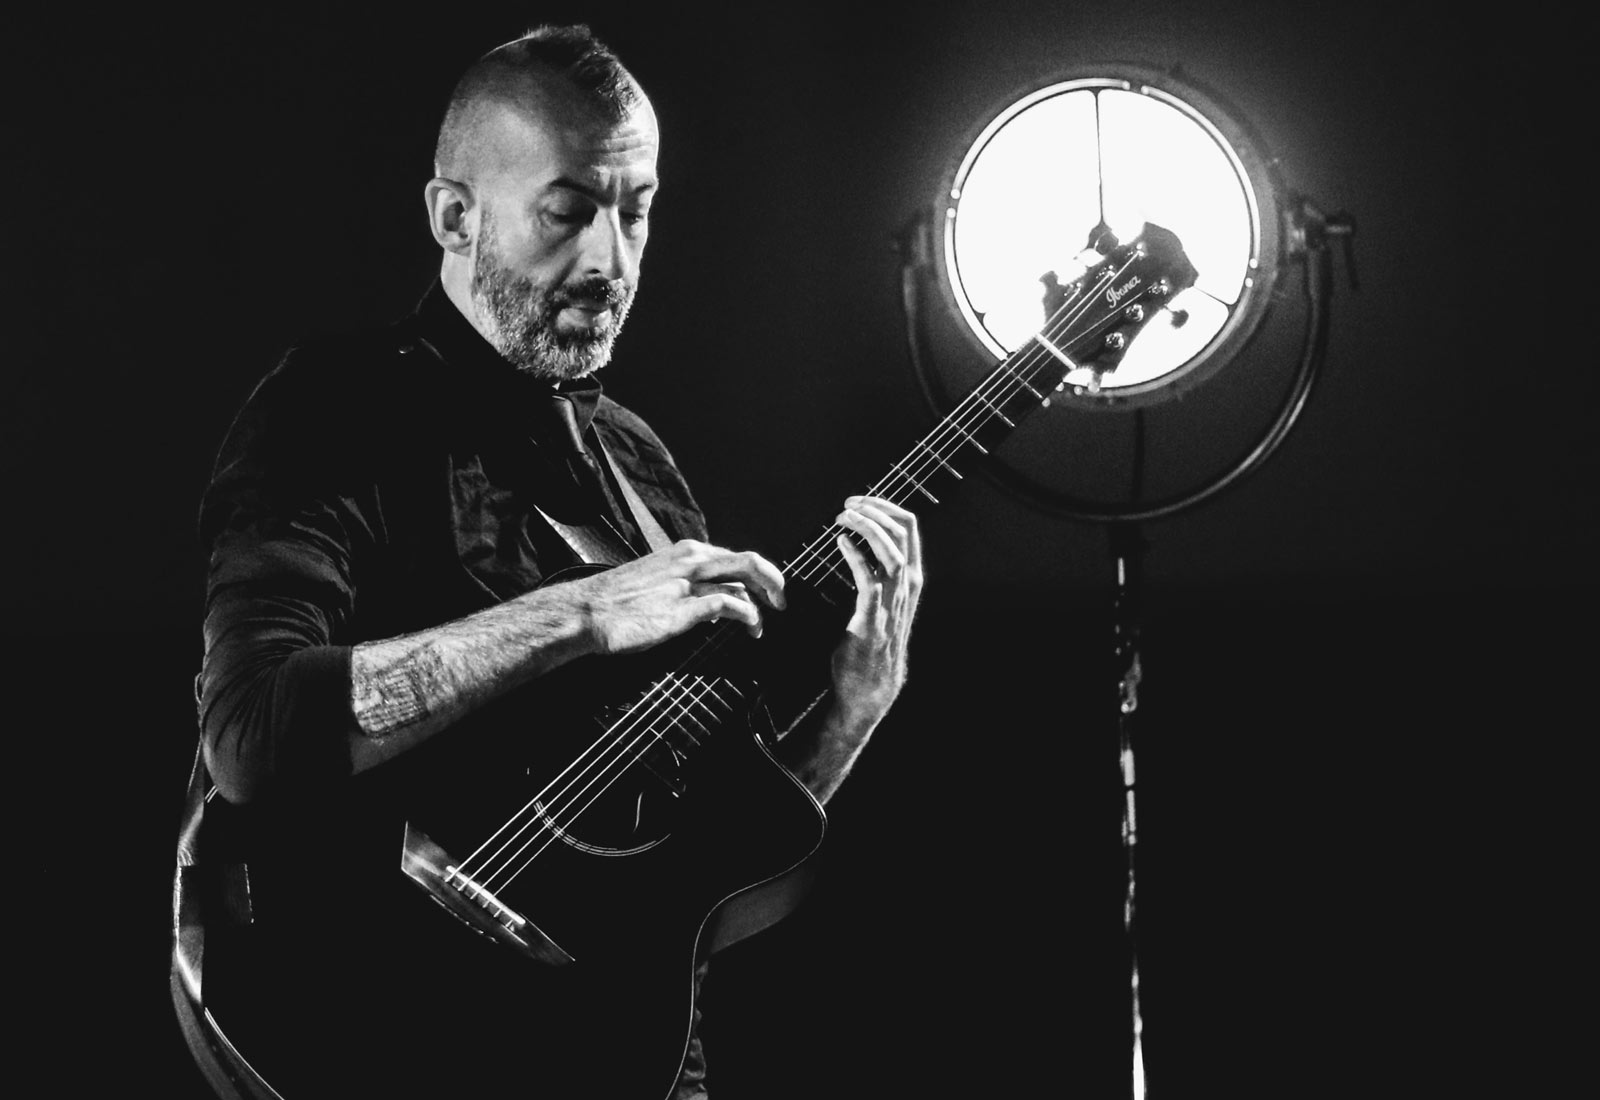 Acoustic Singer-Songwriter Jon Gomm Joins the Ibanez Artist Roster